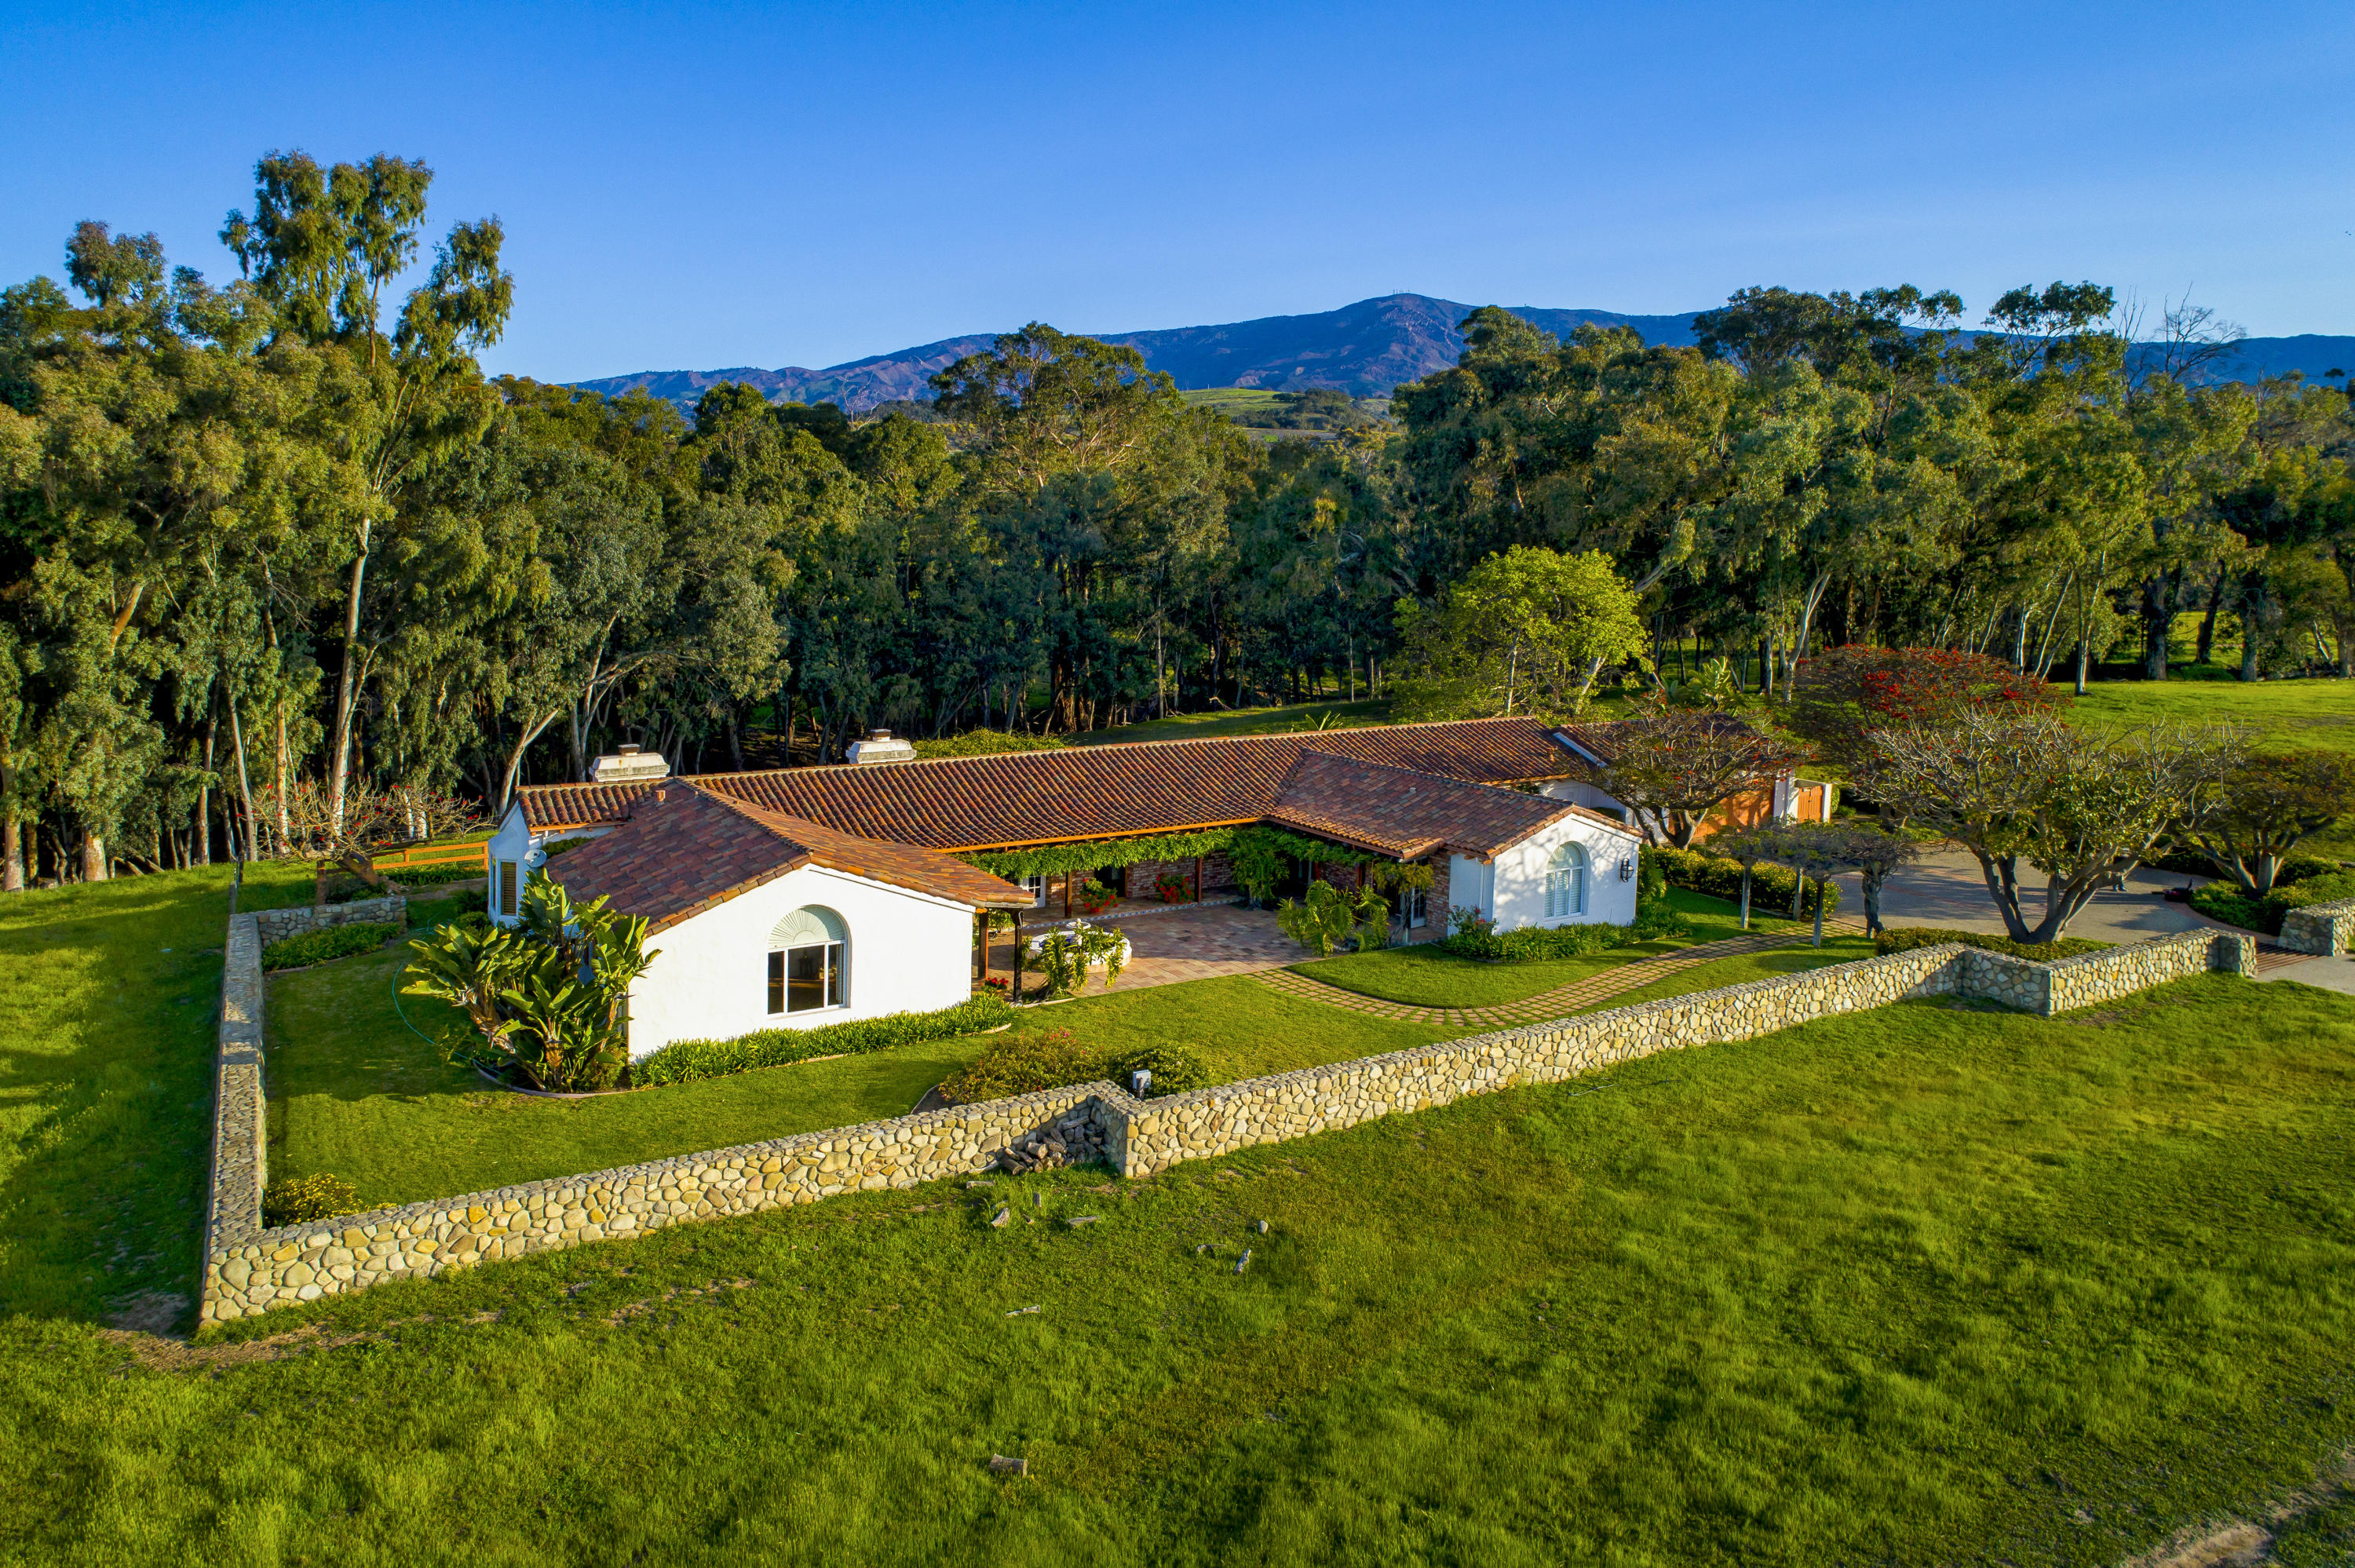 Farm / Ranch for Sale at 10045 Calle Real 10045 Calle Real Santa Barbara, California 93117 United States